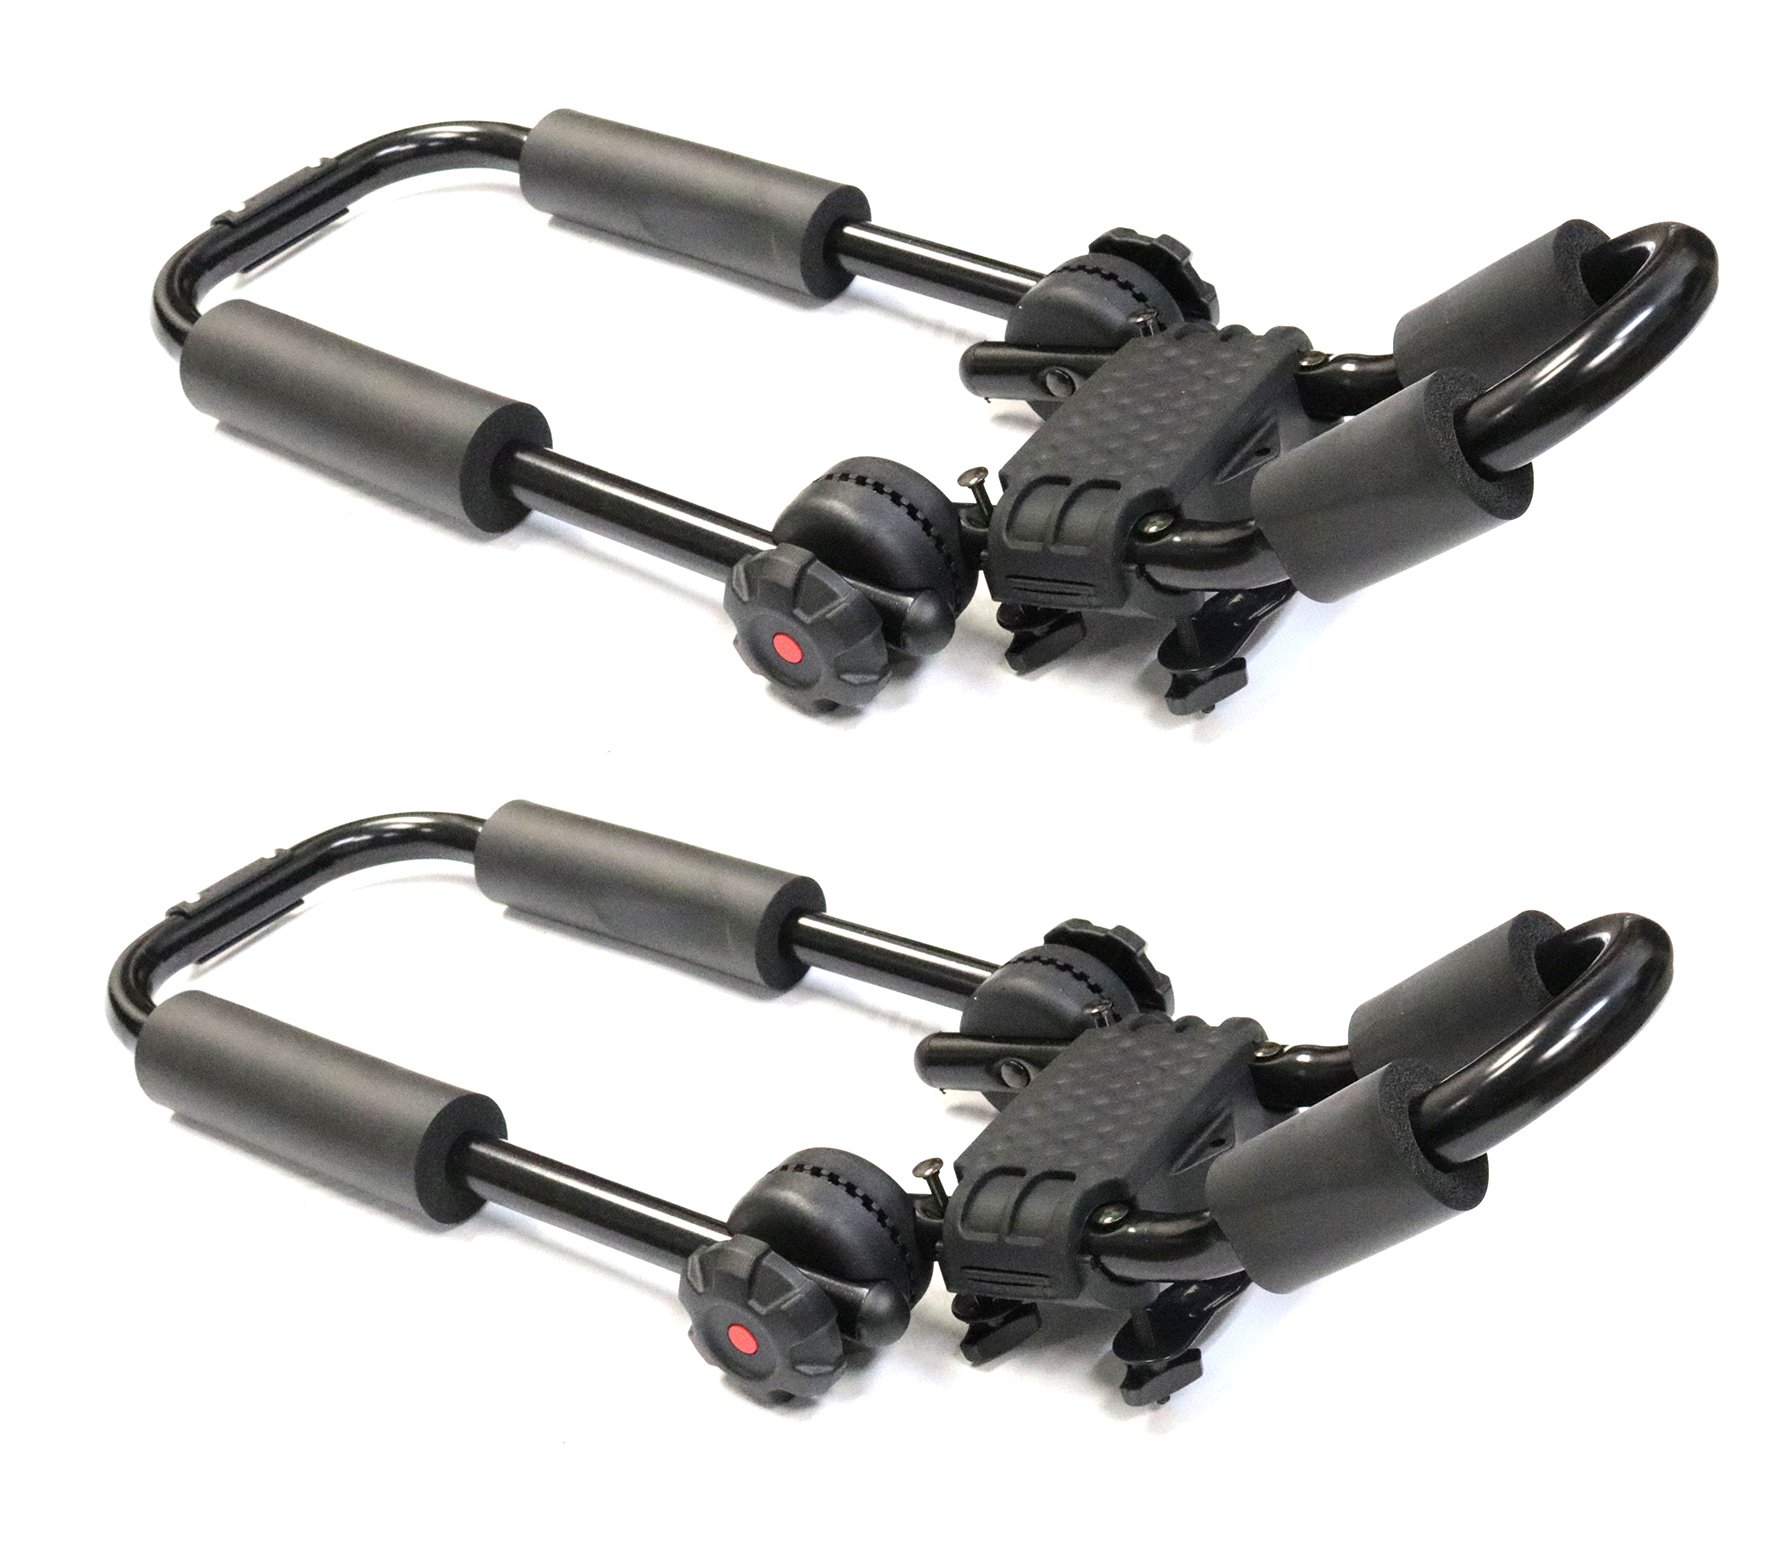 TMB Universal Dual Kayak Mounting System V2 fits most Vehicles Equipped with Cross Bars